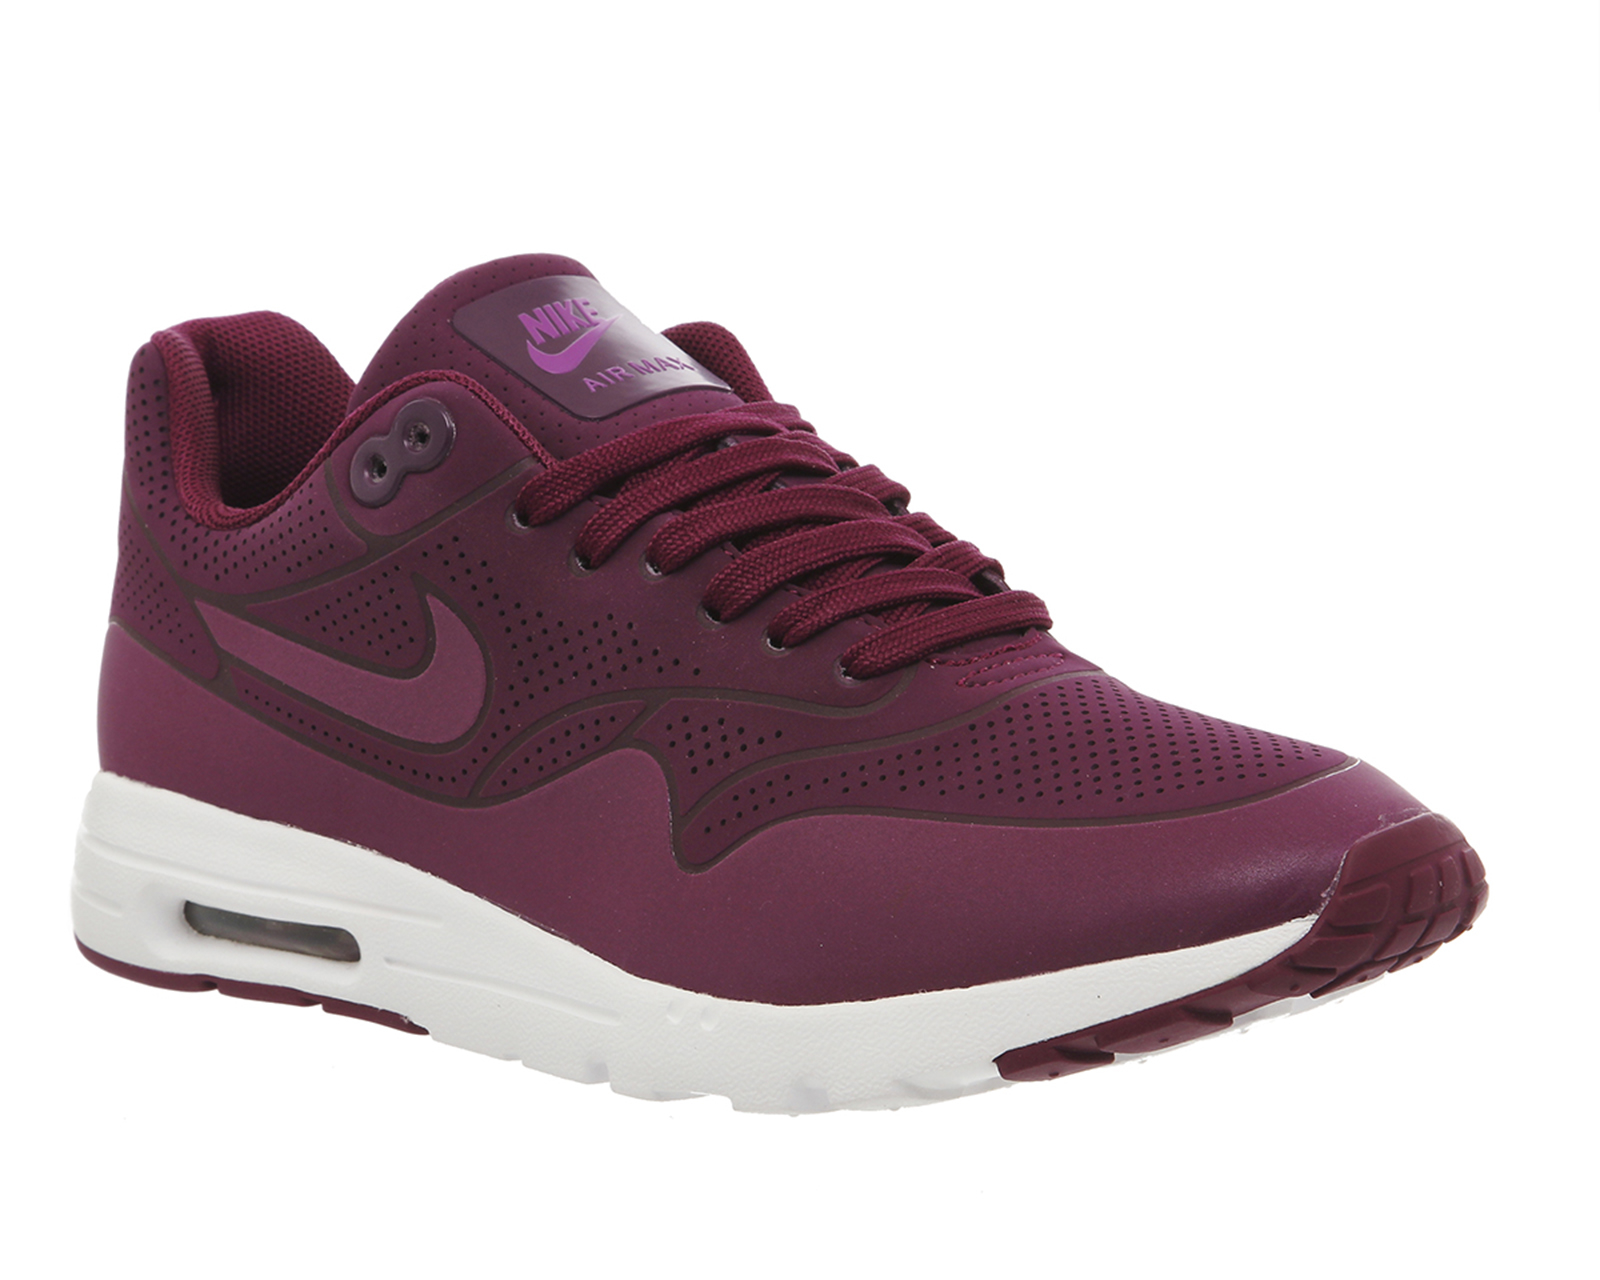 nike air max 1 ultra moire l in purple lyst. Black Bedroom Furniture Sets. Home Design Ideas